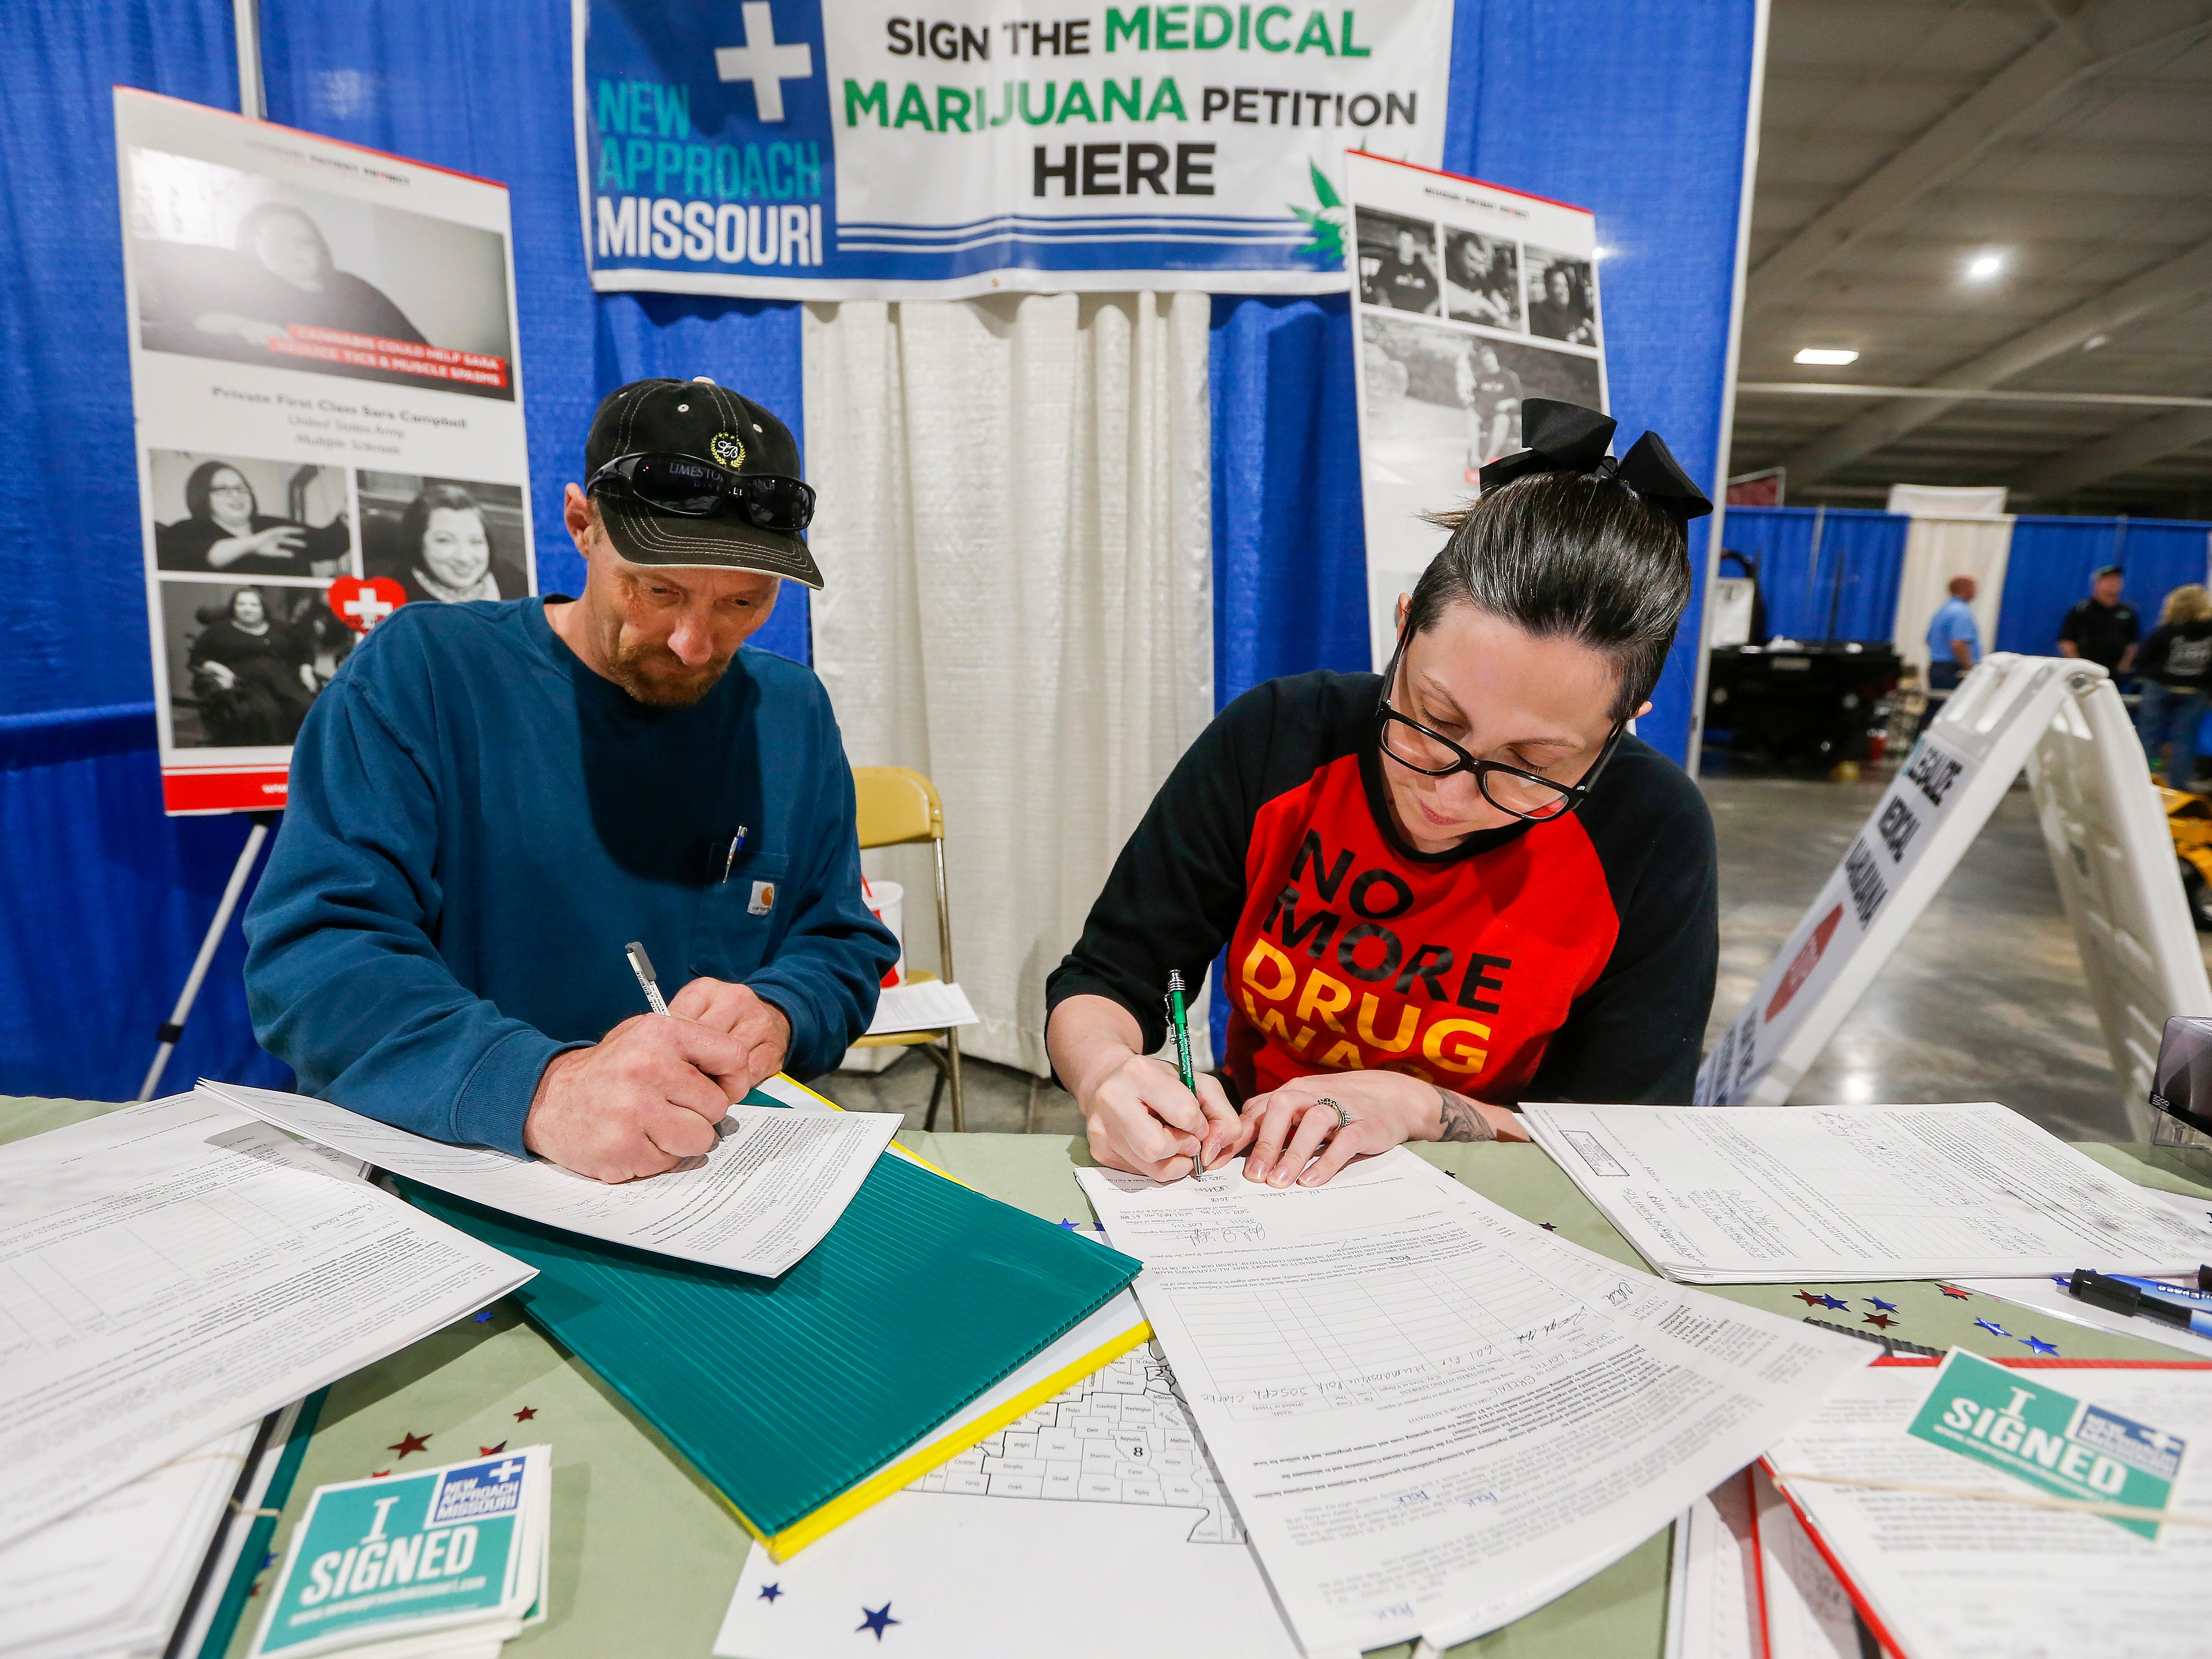 Ashley Markum and Josh Loftis notarize signatures for New Approach Missouri to get the medical marijuana amendment on the November ballot during the Ozark Spring Roundup at the Ozark Empire Fairgrounds on Saturday, March 24, 2018.